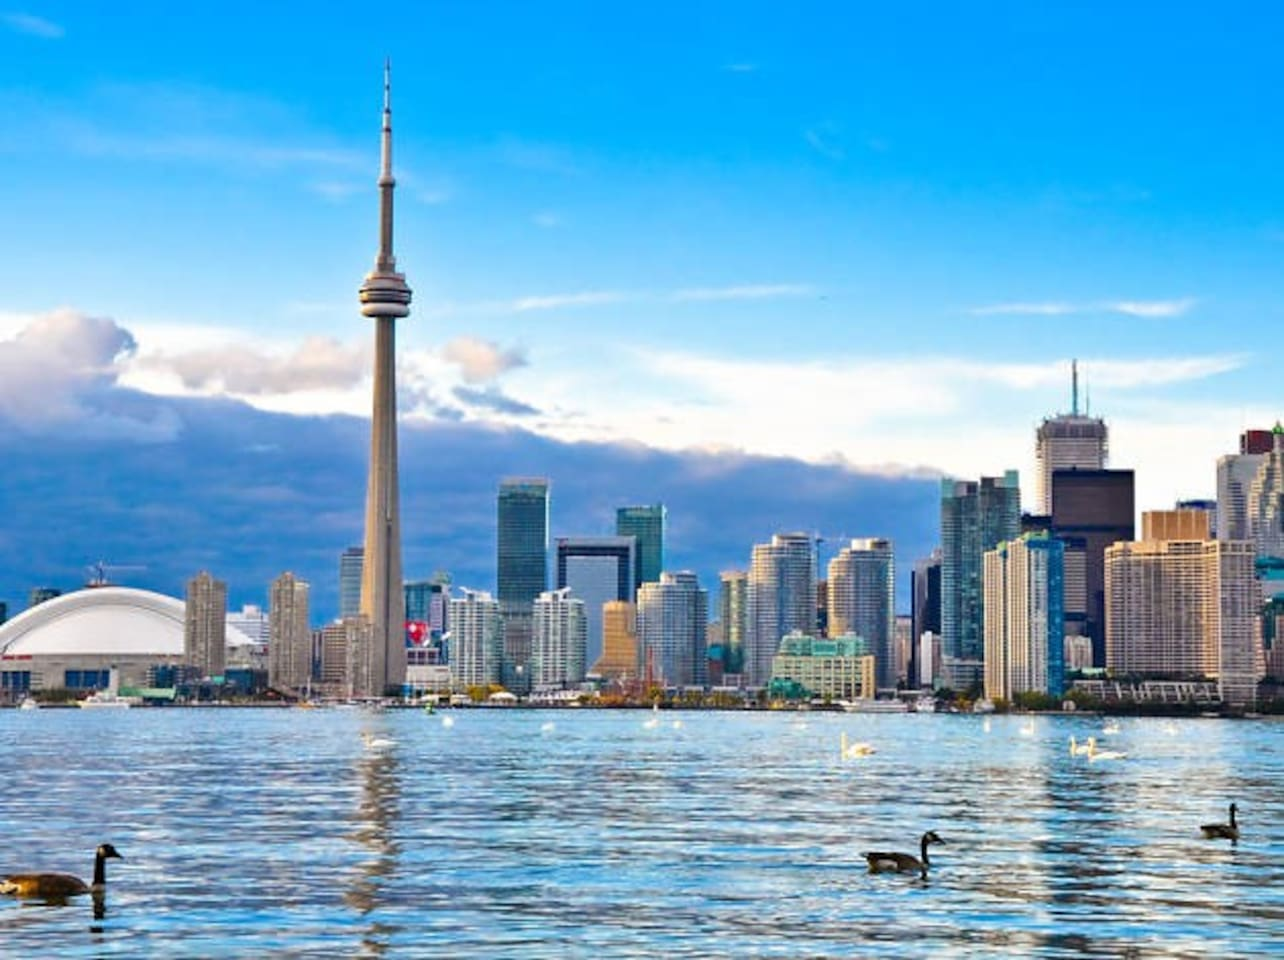 This is Toronto Waterfront, a 10 minutes walk from my place. This photo is for illustration purposes only